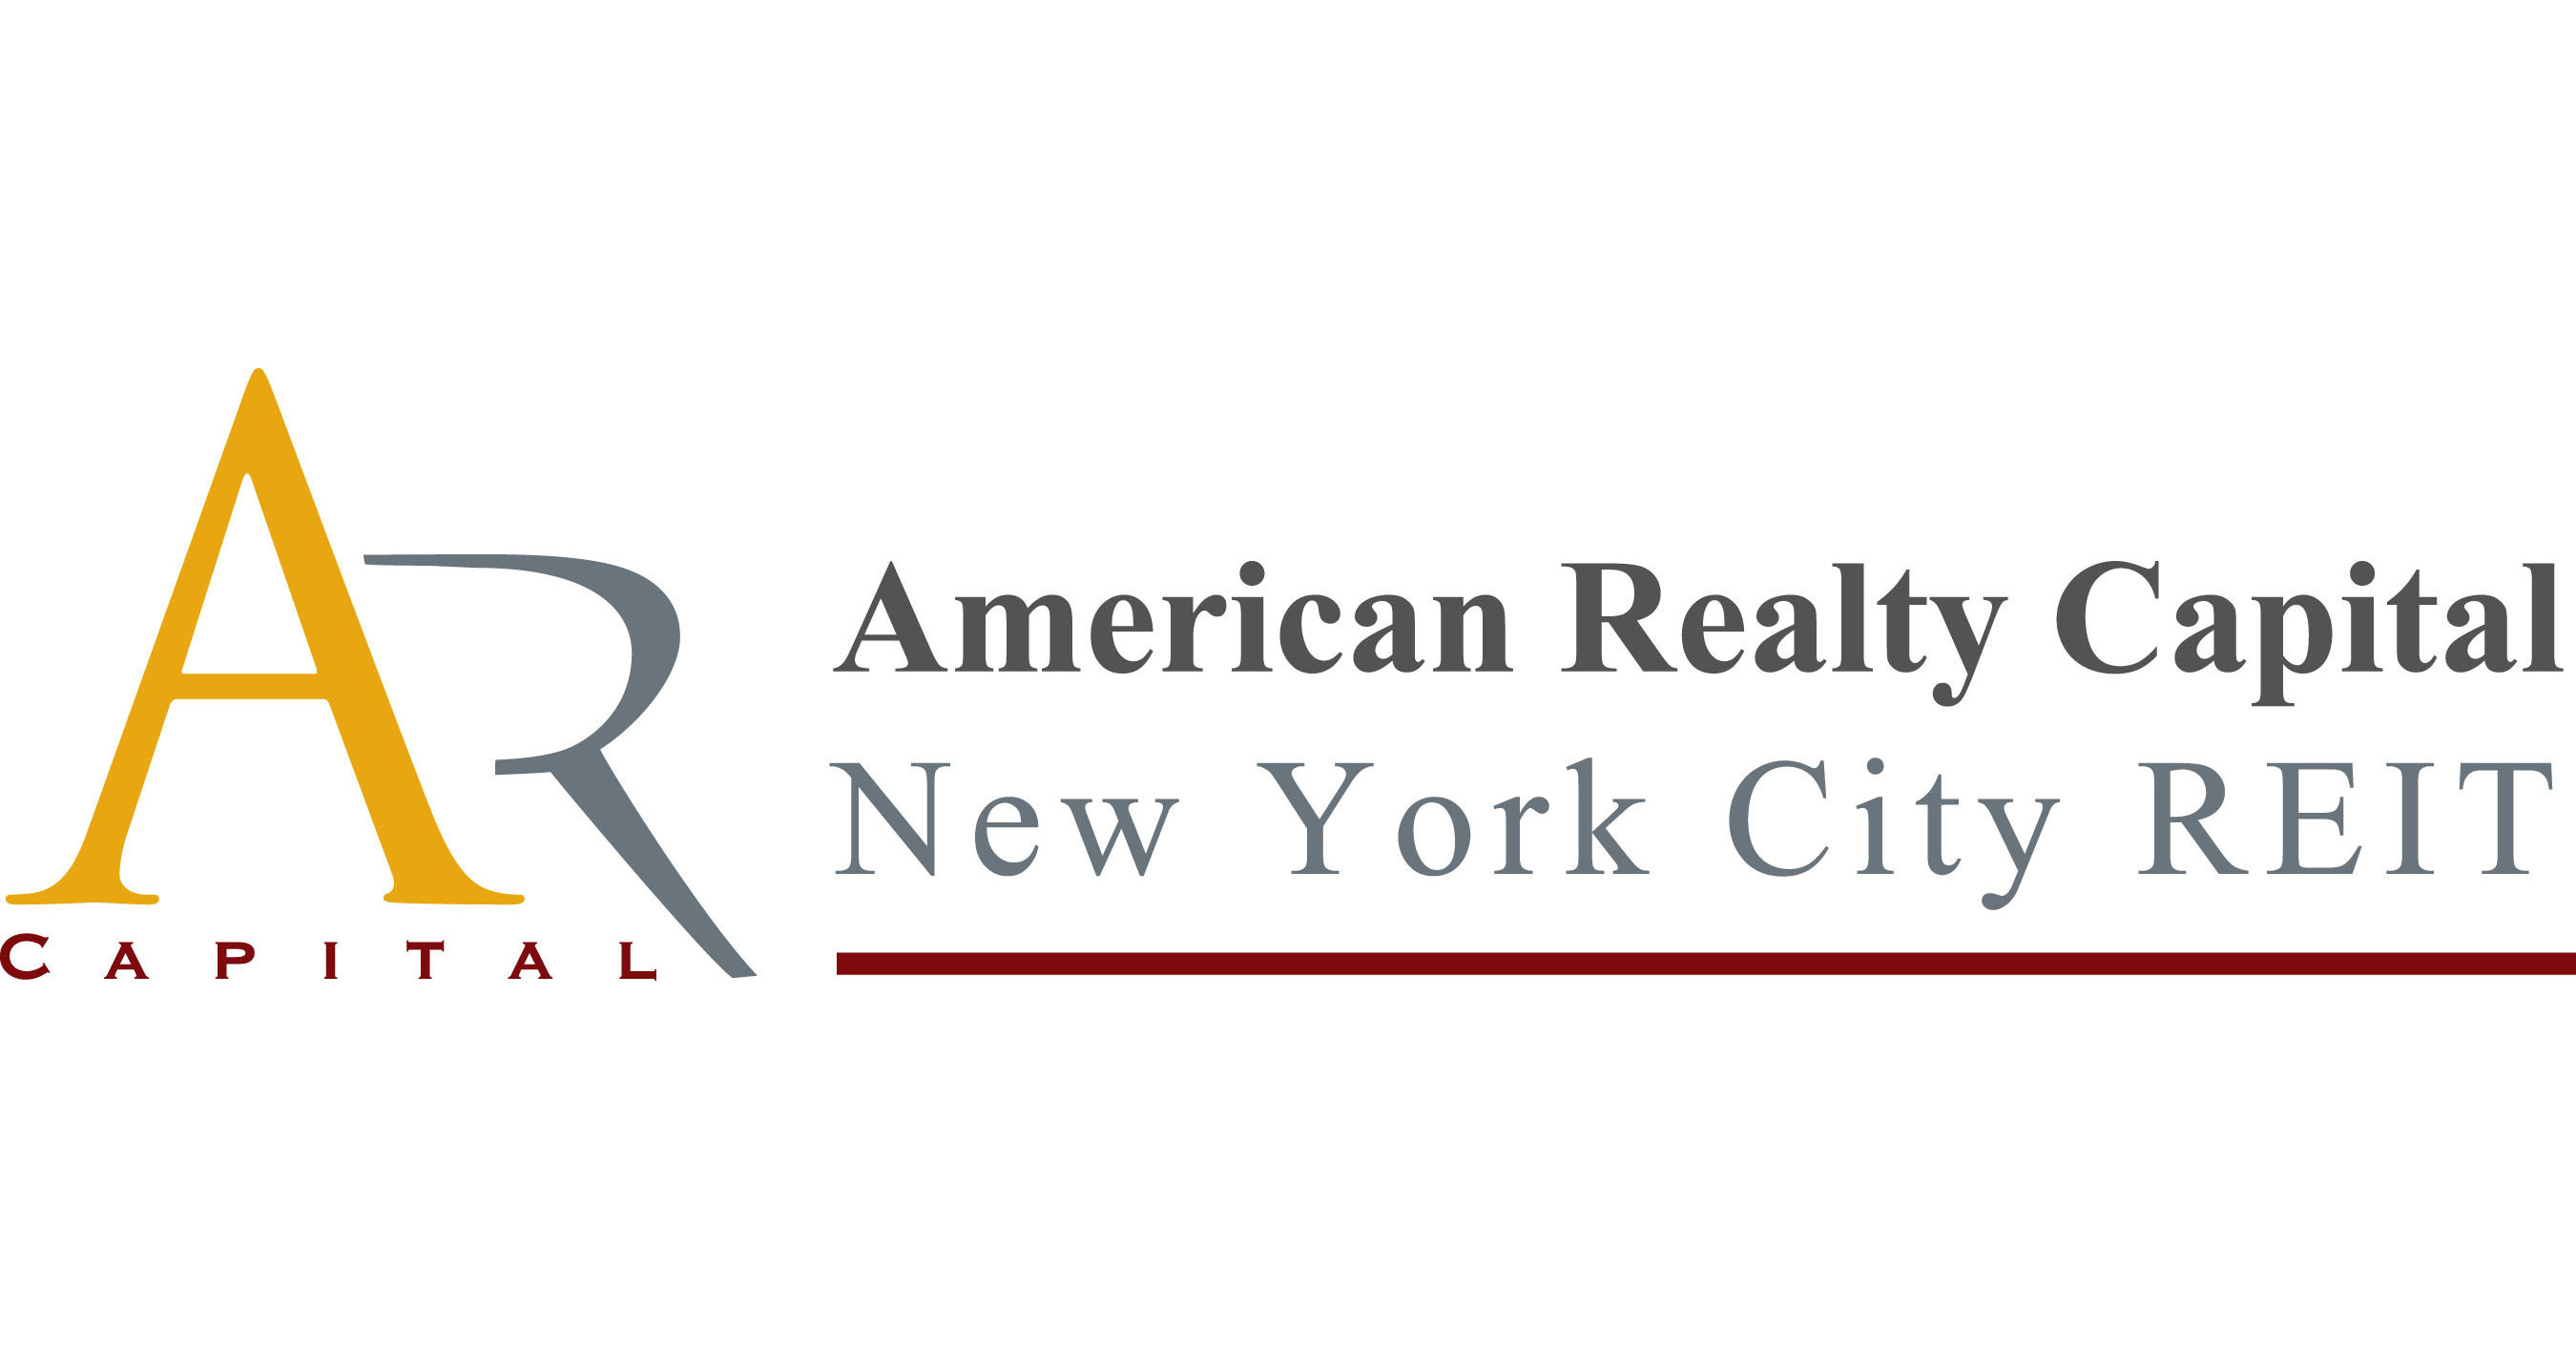 investment news american realty capital global trust